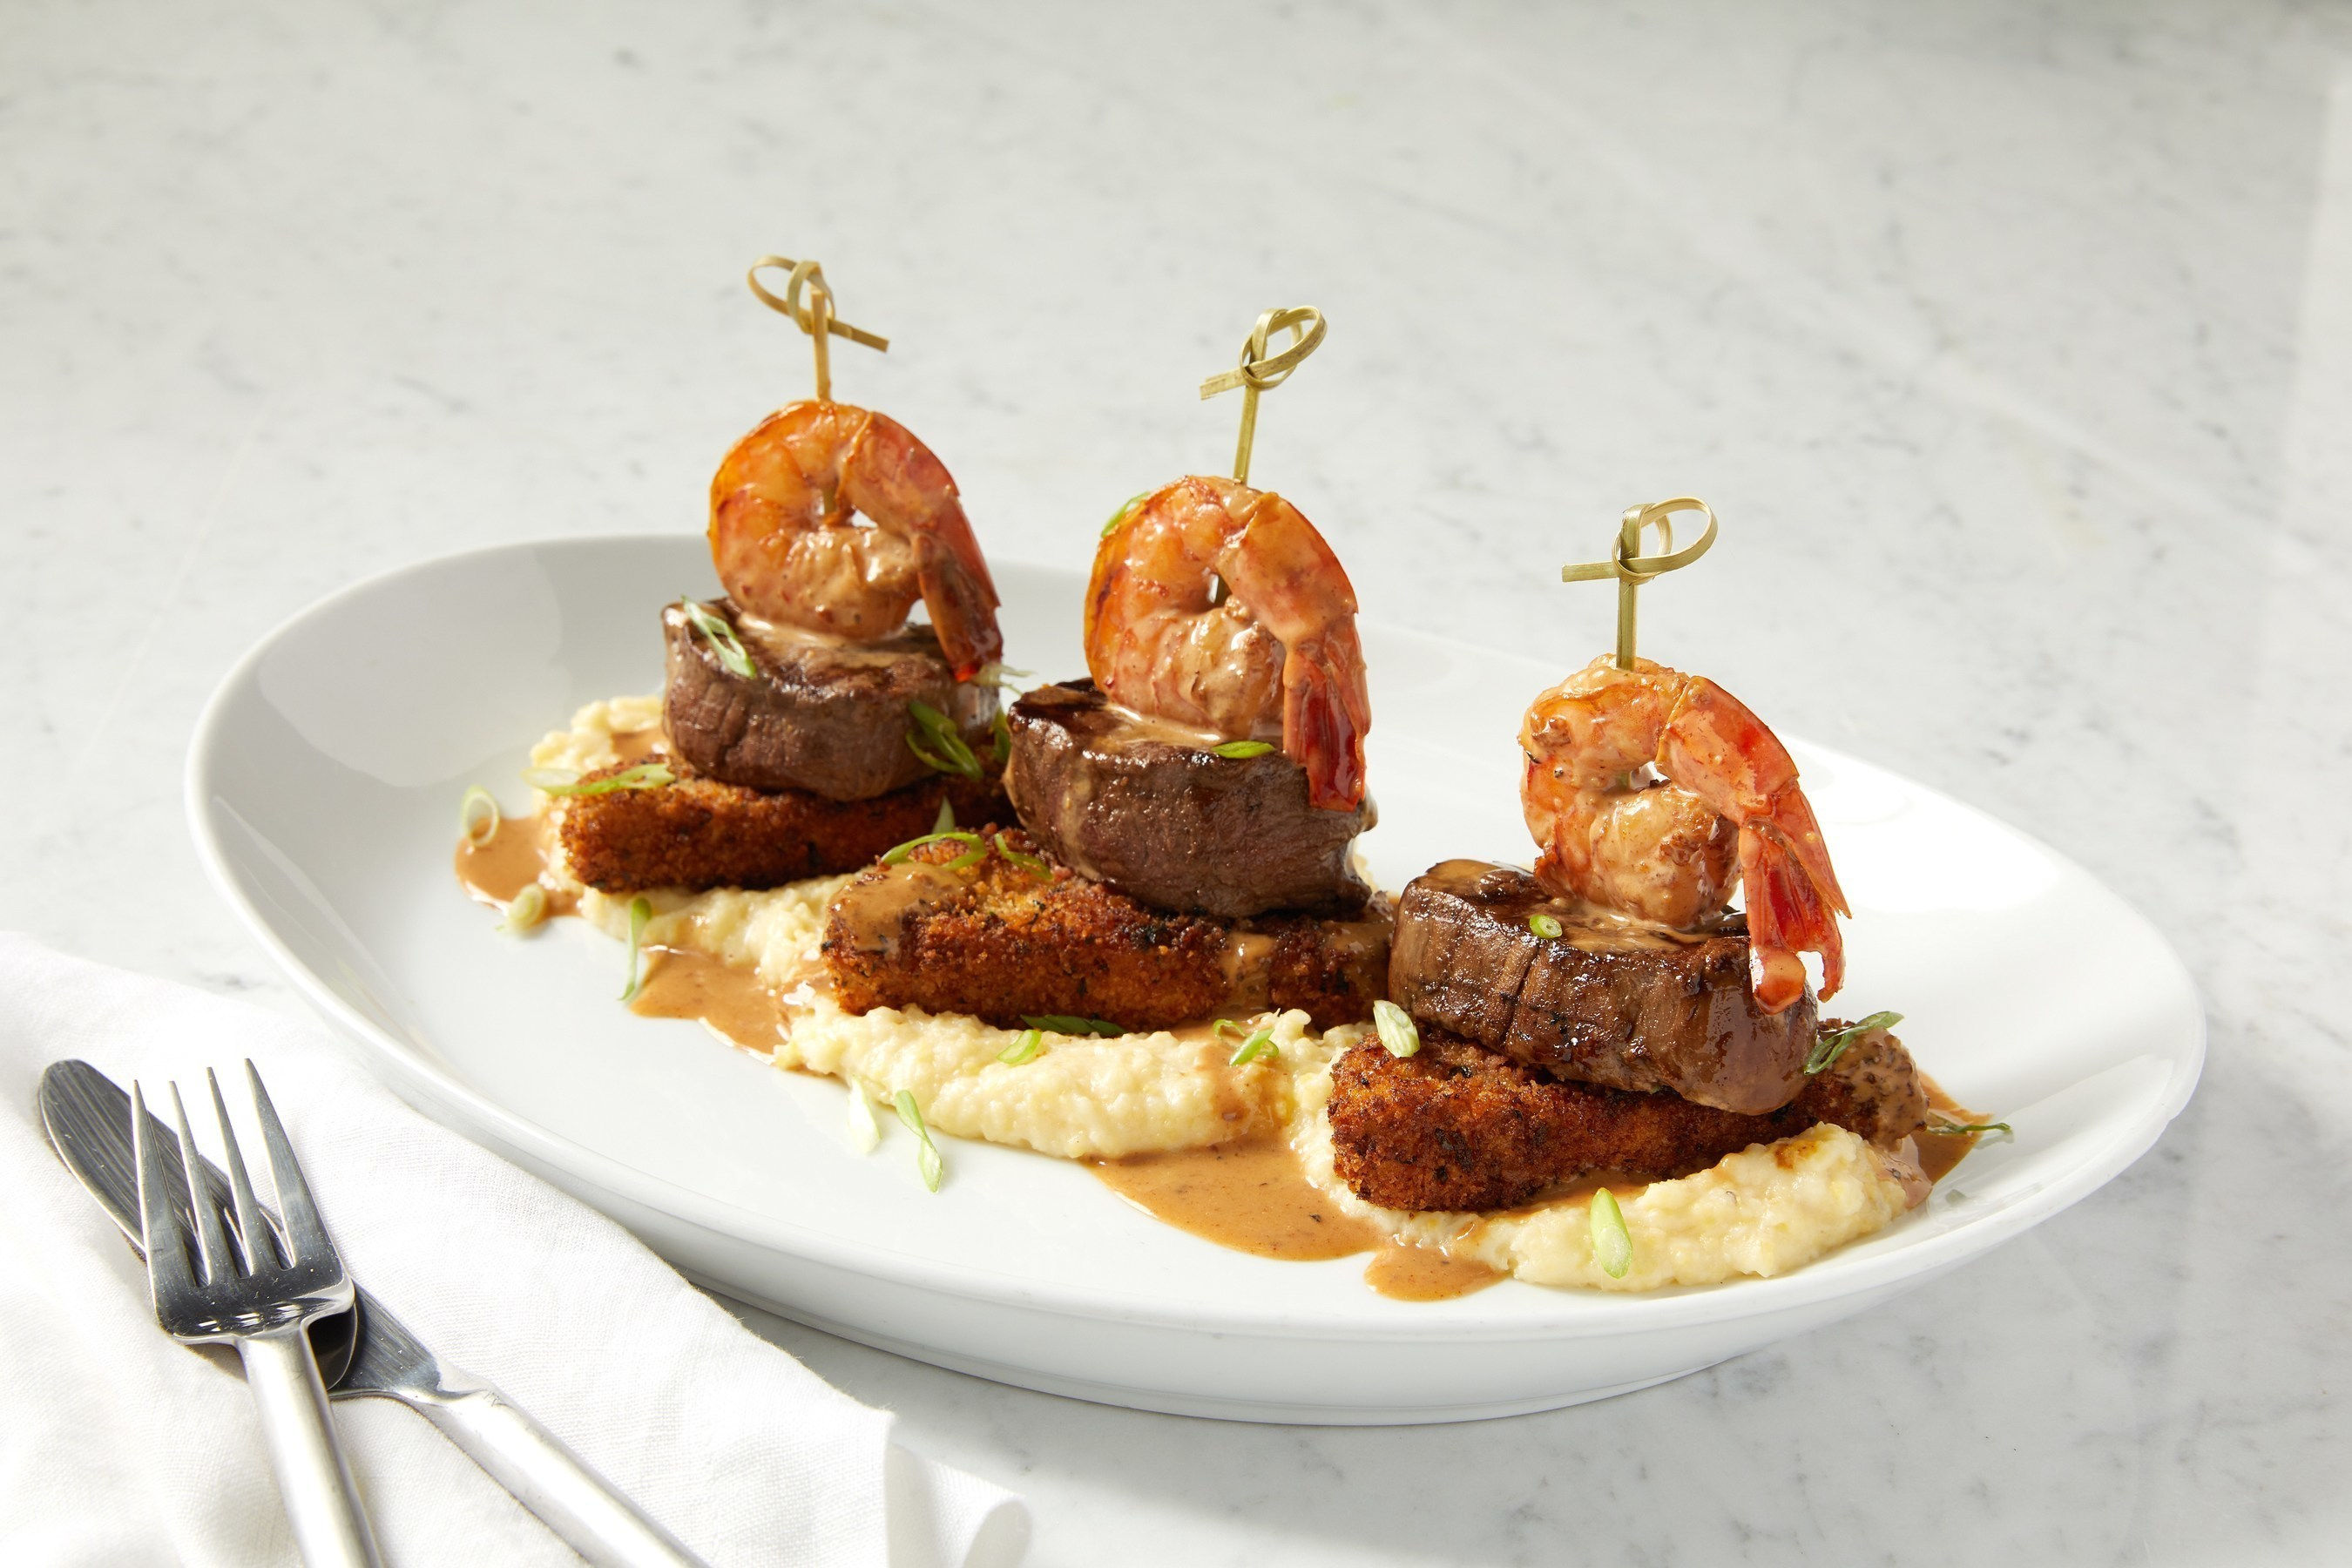 Surf & Turf at BRIO Tuscan Grille